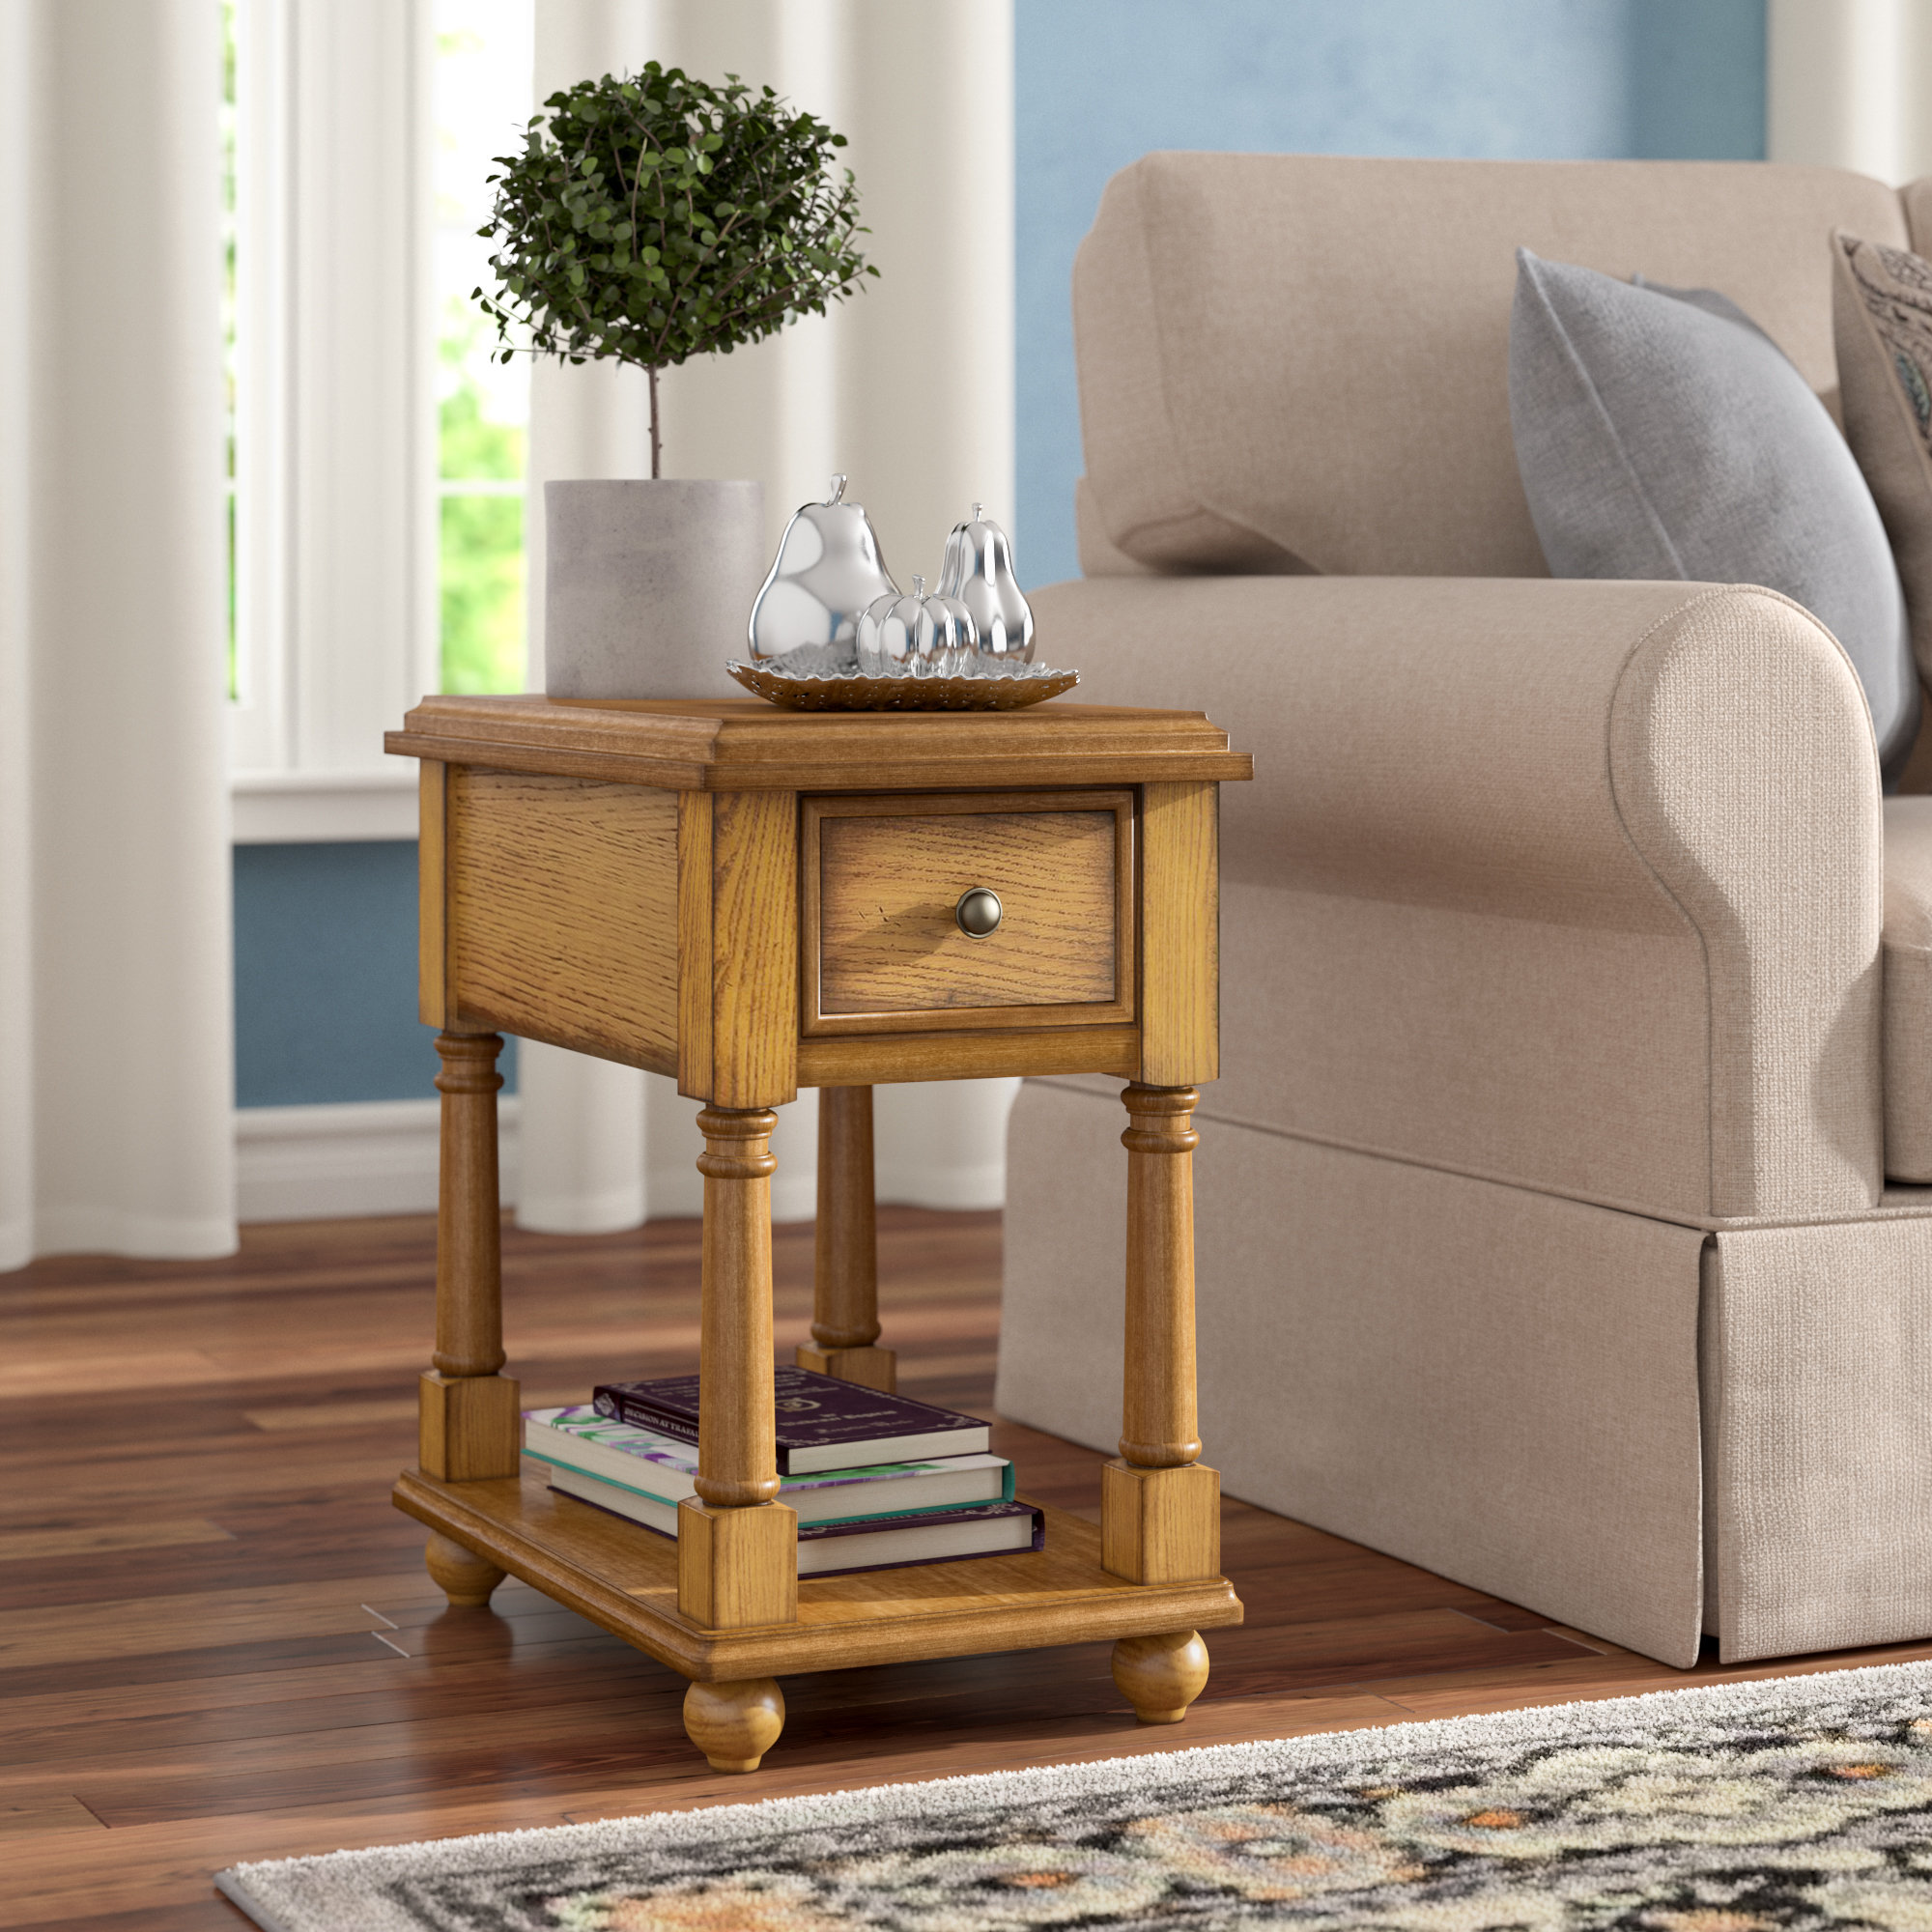 end table with bottom shelf katherine storage room essentials mixed material accent square for skinny garden occasional tables coffee tray ideas stylish lamps mirrored bedroom